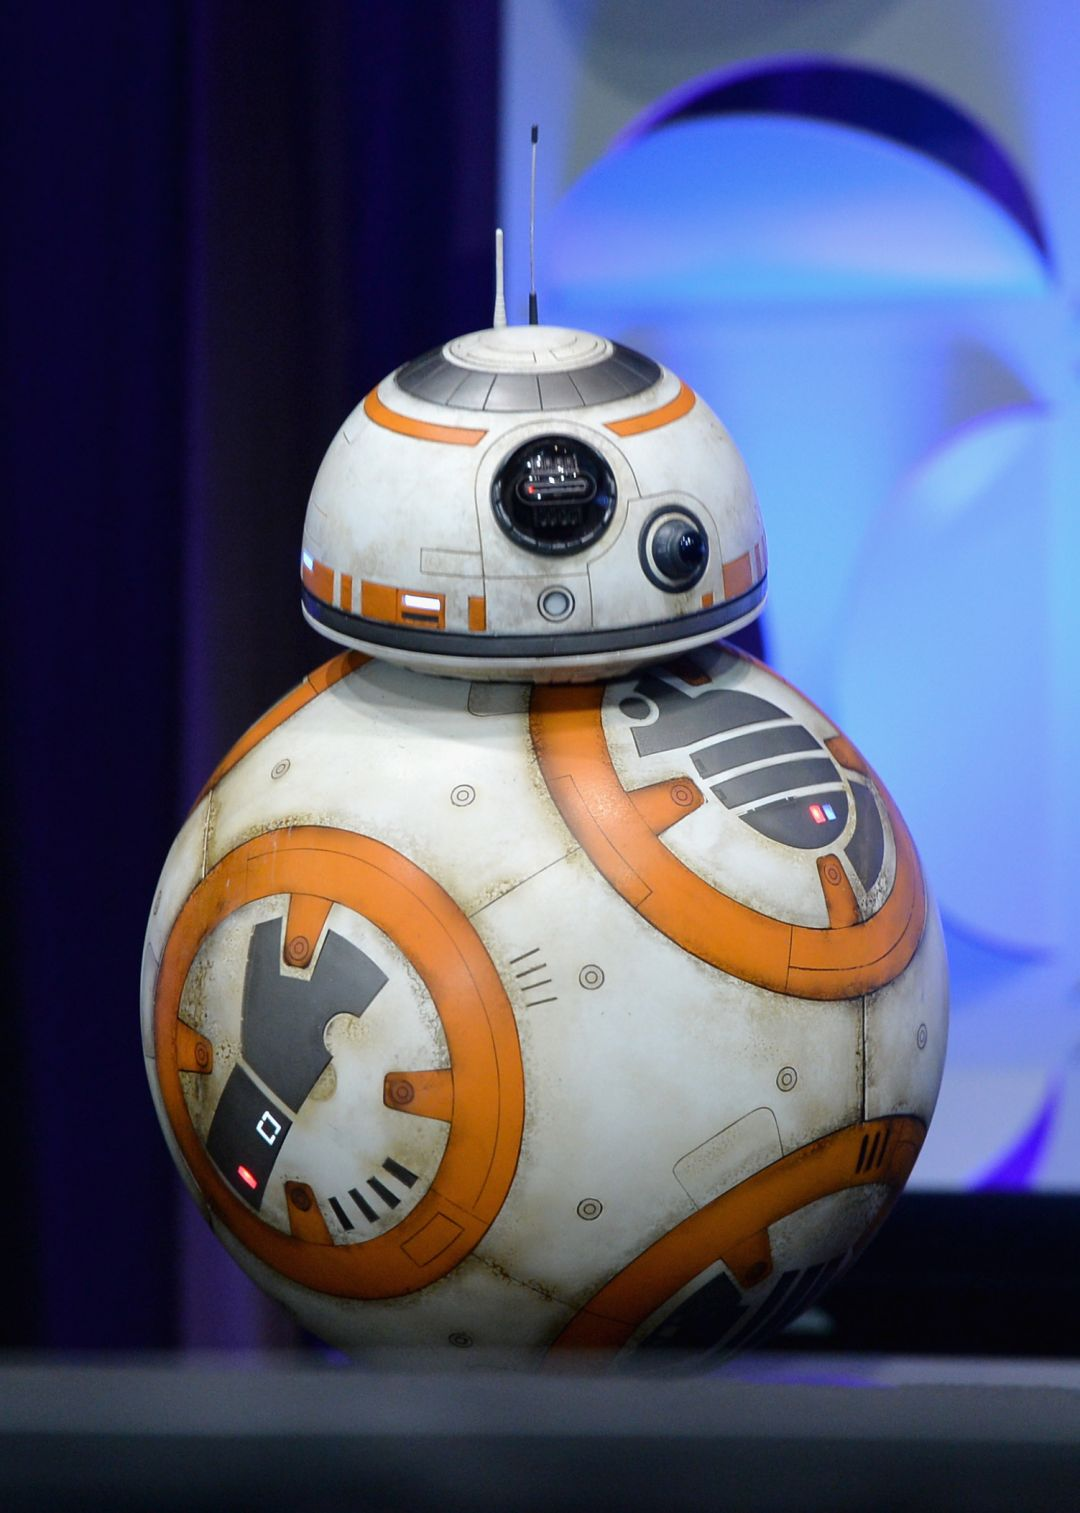 70 Bb8 R2d2 Android Iphone Desktop Hd Backgrounds Wallpapers 1080p 4k 1503x2105 2020